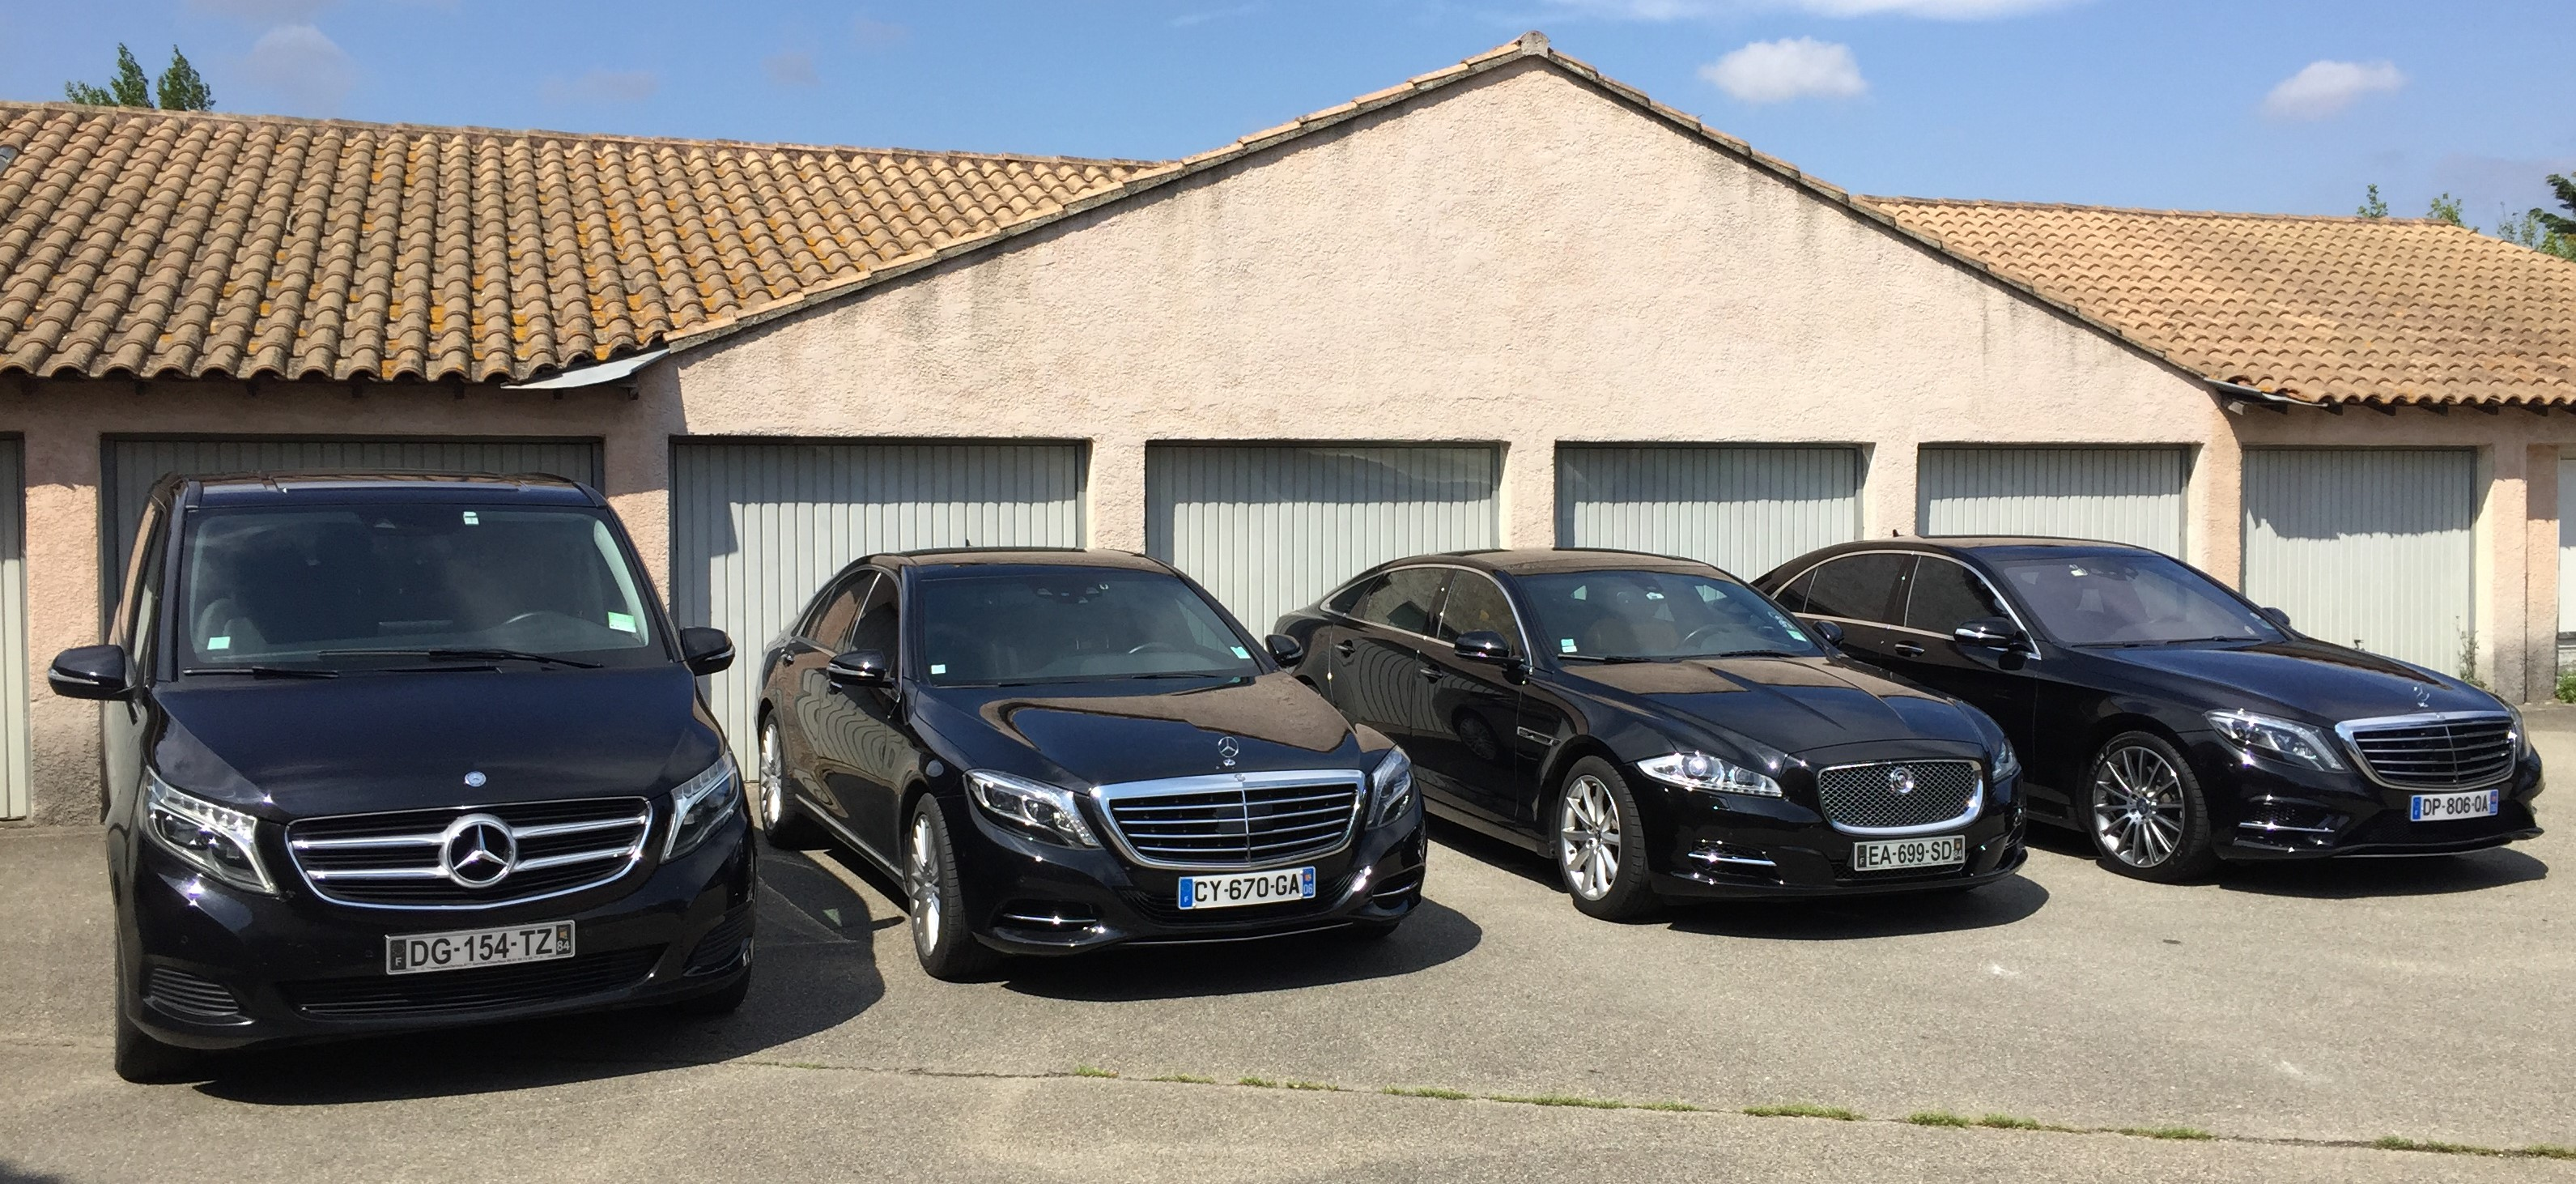 Our cars fleet with driver